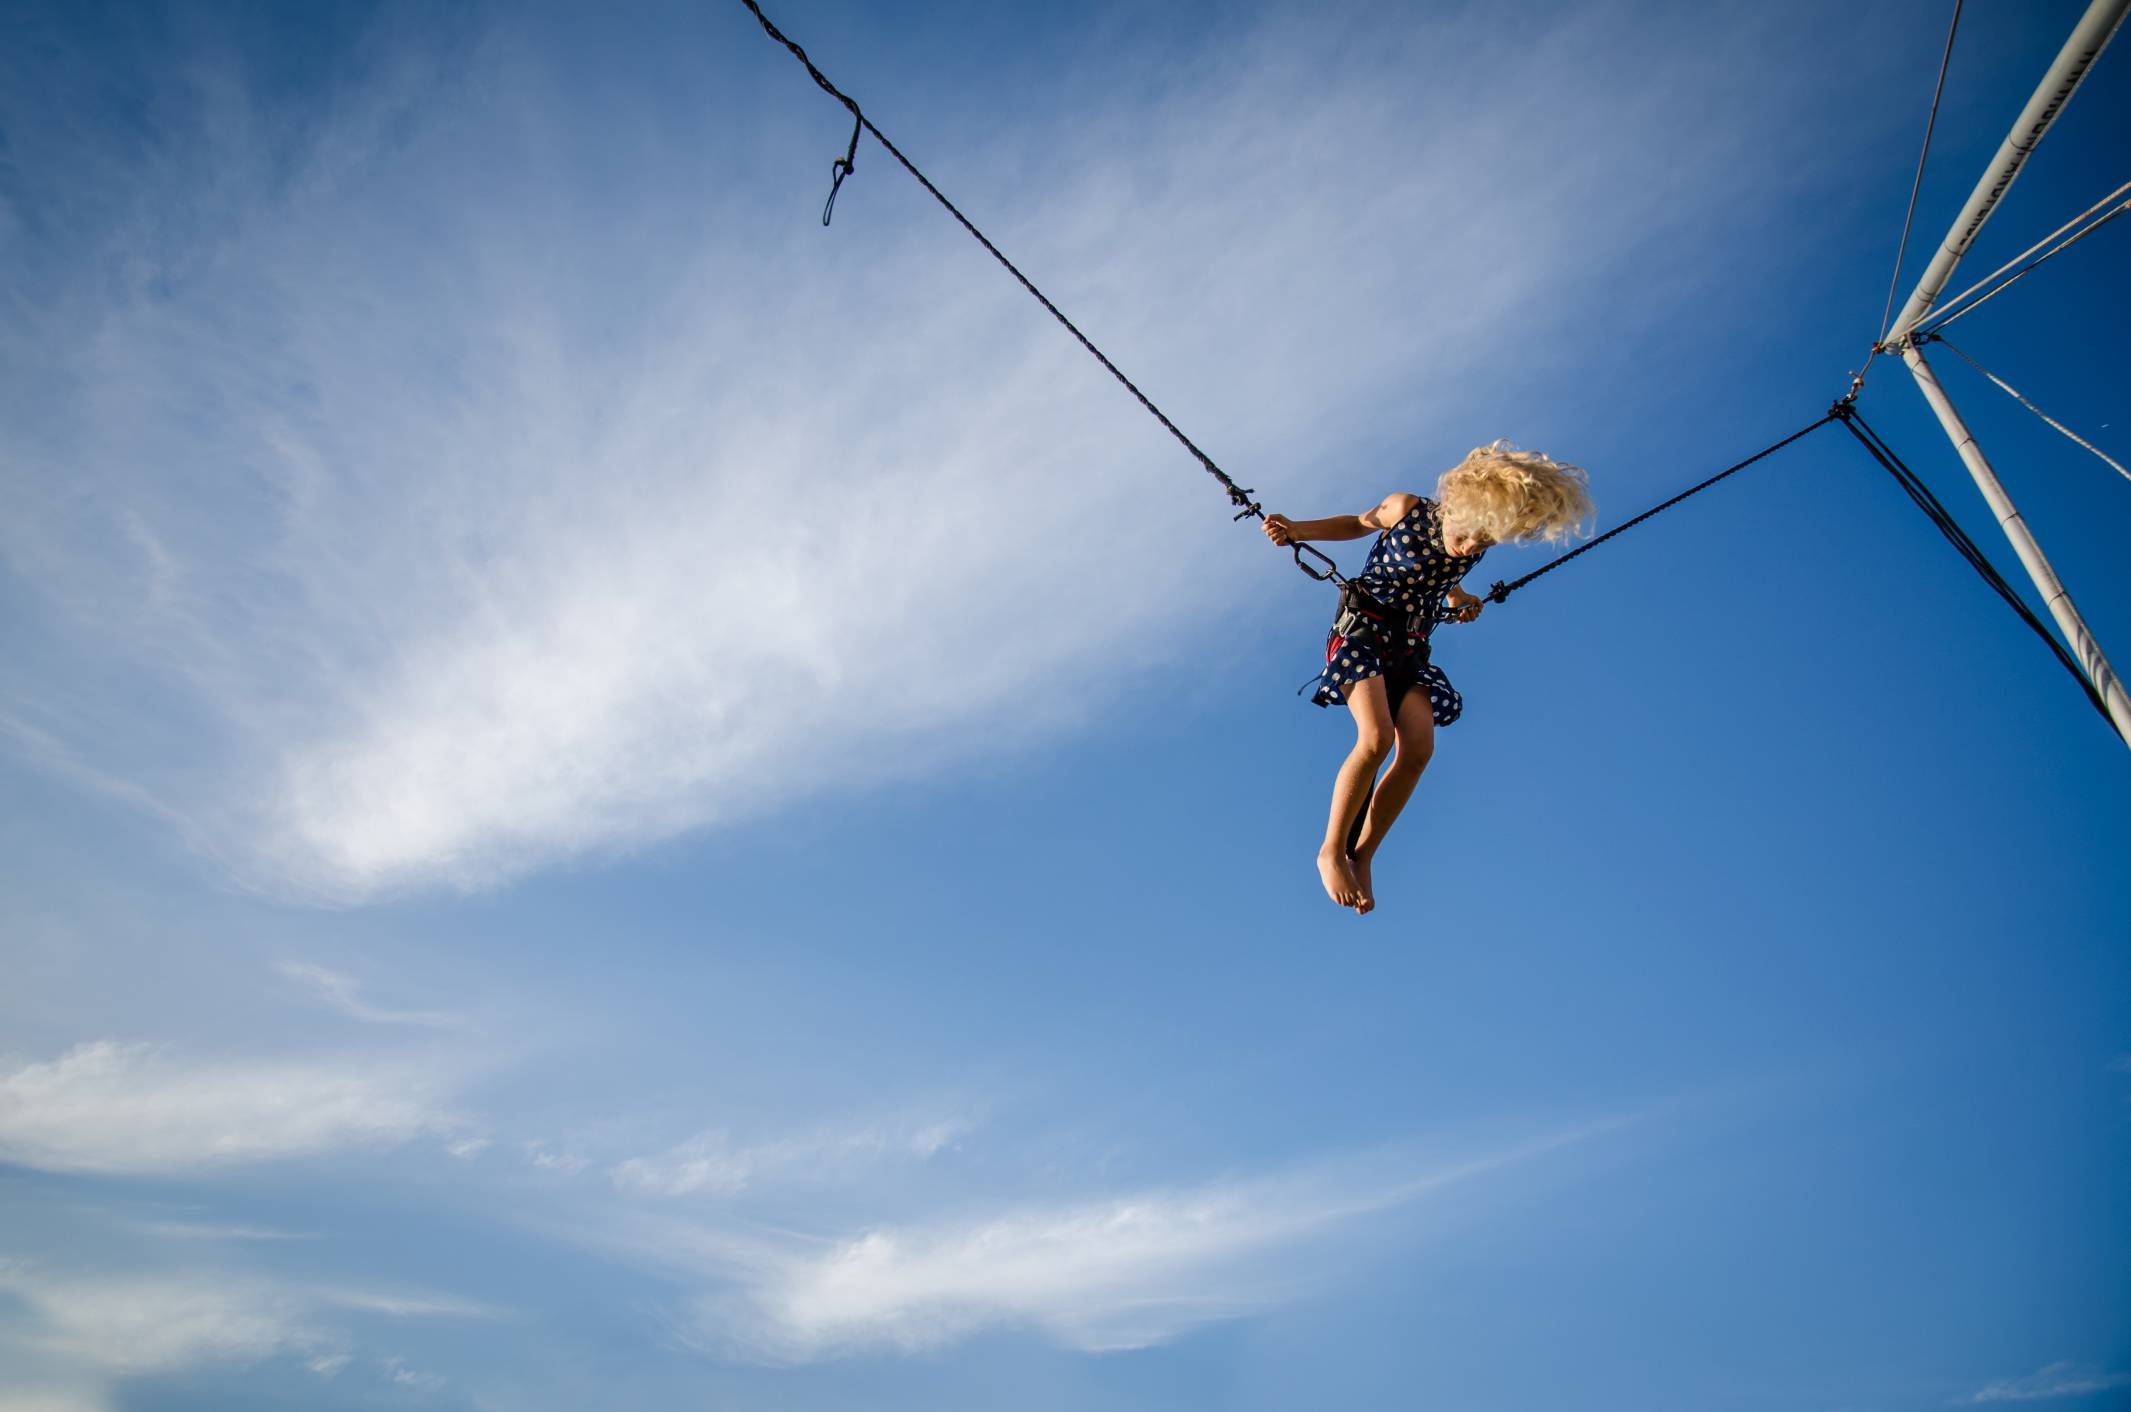 nearest bungee jumping to chicago, illinois | gone outdoors | your